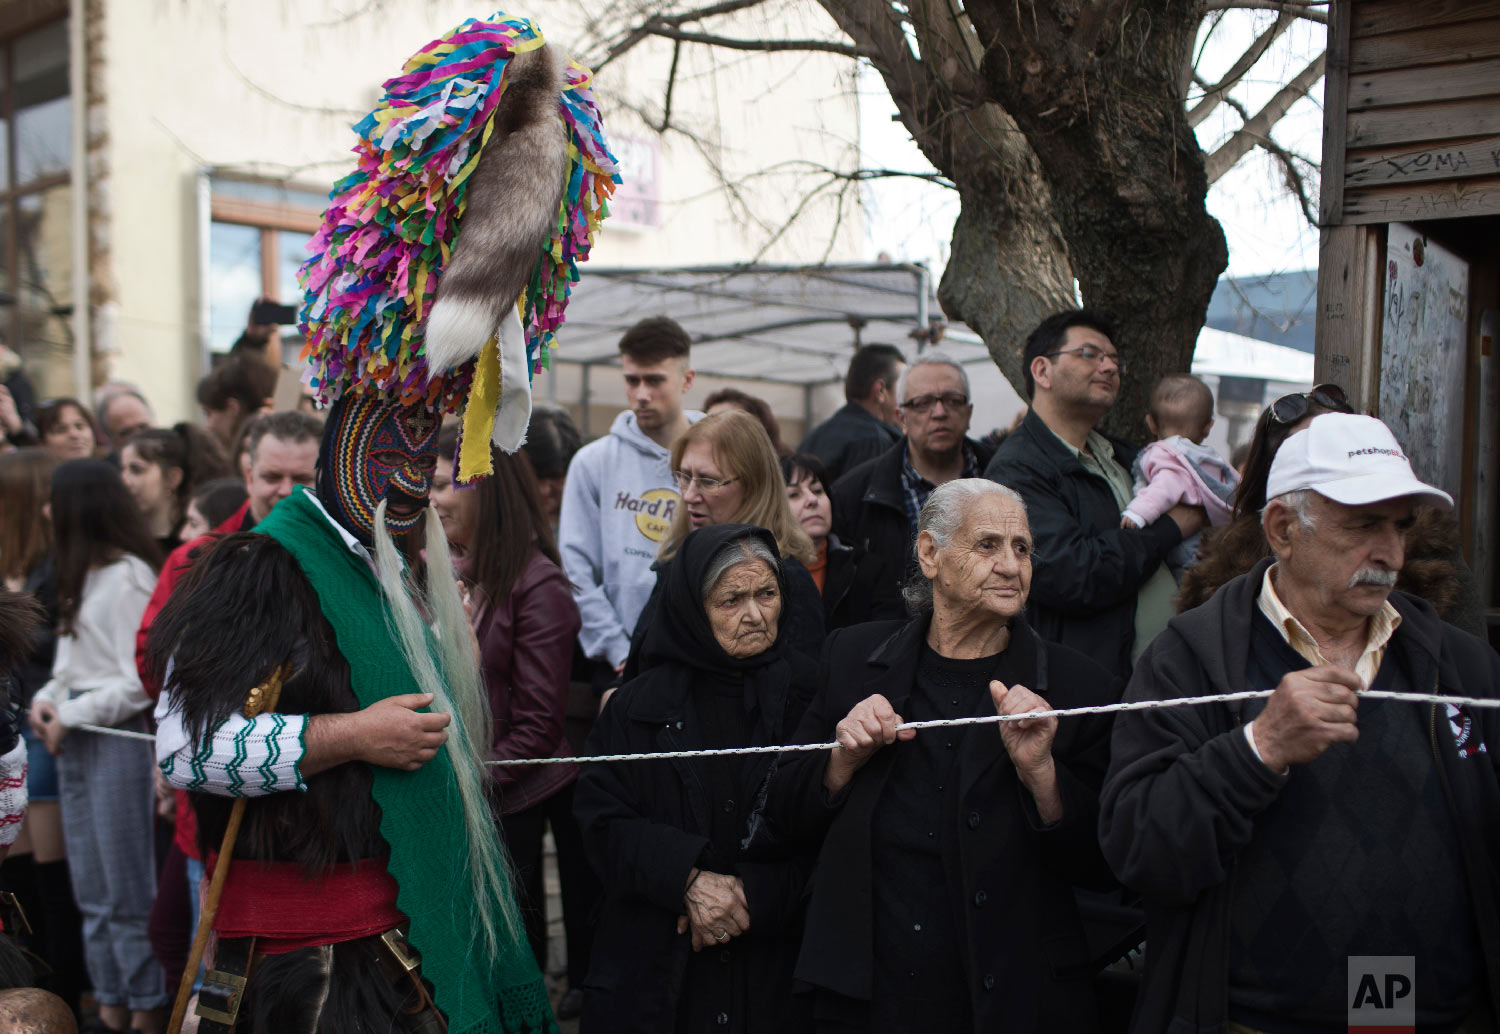 Spectators look on as a man wearing a goat hide with bells around his waist and a mask that includes a meter tall, ribbon-covered formation topped with a foxtail, also called a bell wearer, participates in a Clean Monday festival in the village of Sohos, northern Greece on March 11, 2019. (AP Photo/Petros Giannakouris)